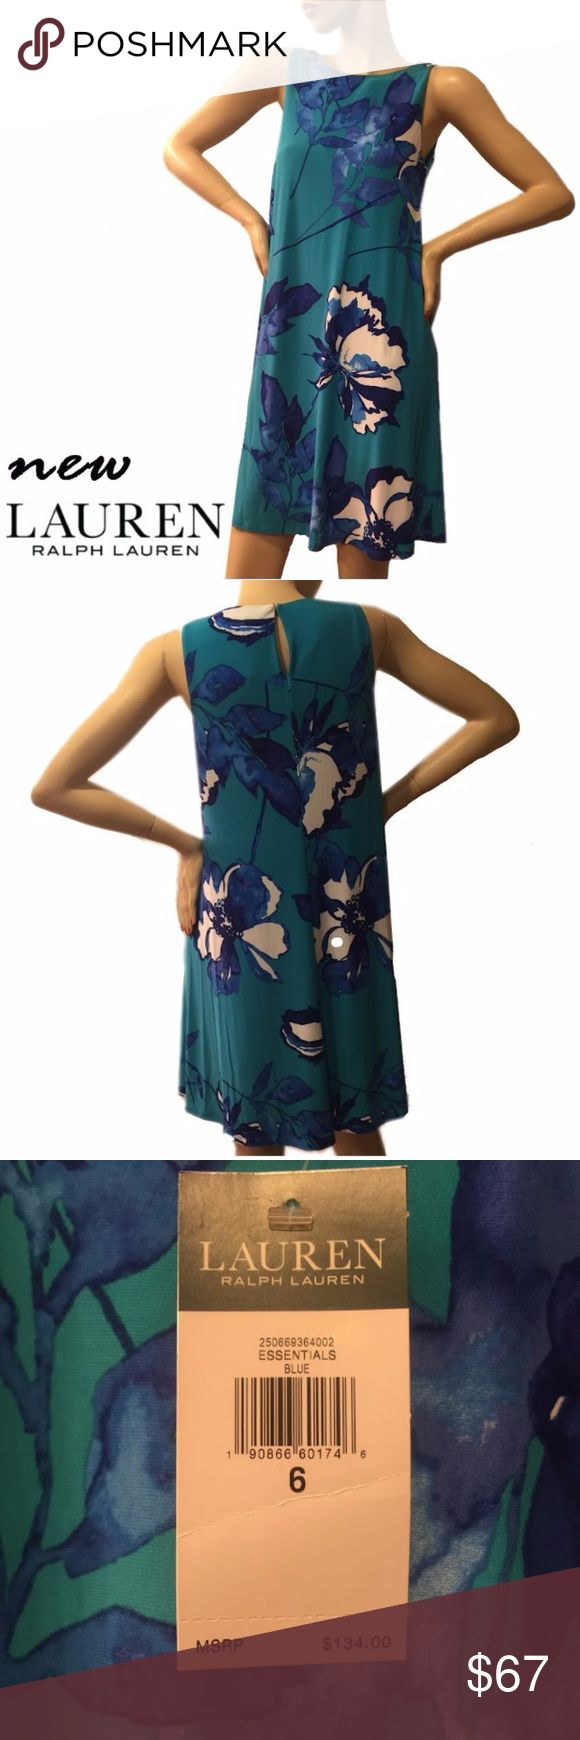 LAUREN Ralph Lauren A-line Floral Trapeze Dress A vivid floral print complements the flattering A-line silhouette of this jersey dress in easy care polyester elastane. Rounded neckline with a hook-and-eye keyhole at the back  It was never worn Lauren Ralph Lauren Dresses Asymmetrical